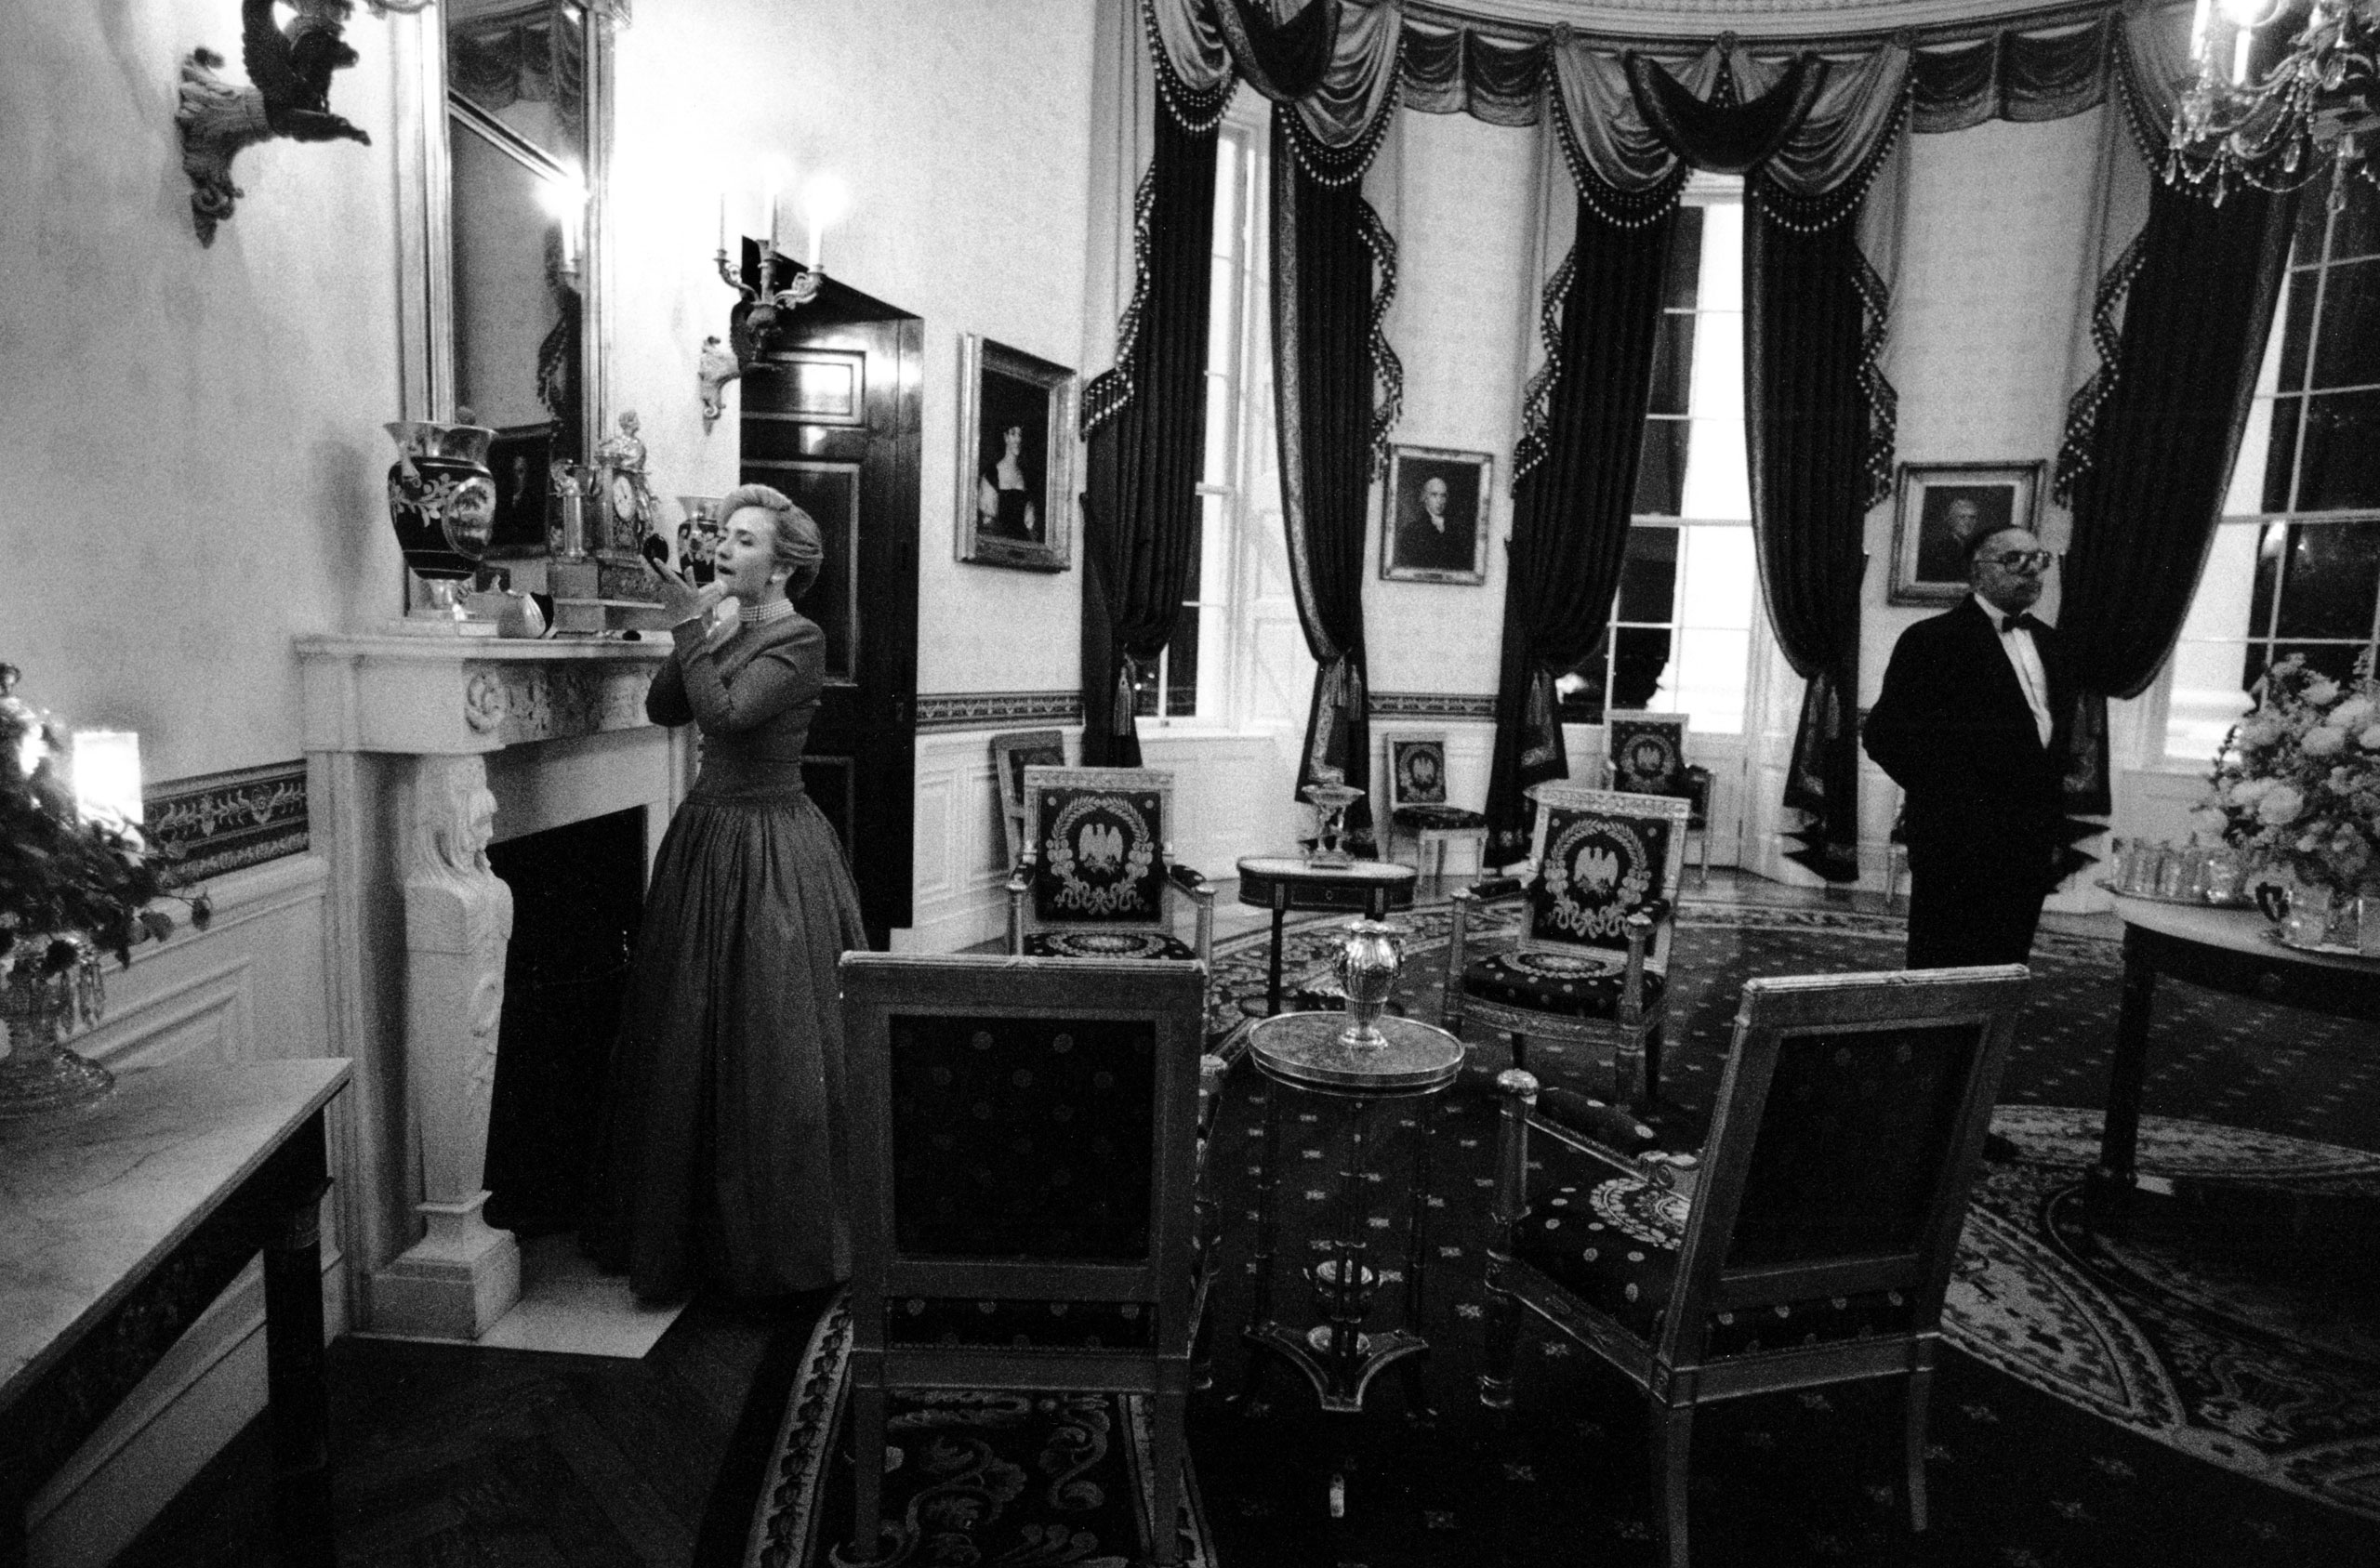 Hillary Clinton does a last-minute touchup in the Blue Room before the 1996 National Governors Association dinner as longtime butler James Jeffries stands nearby, Feb. 4, 1996.